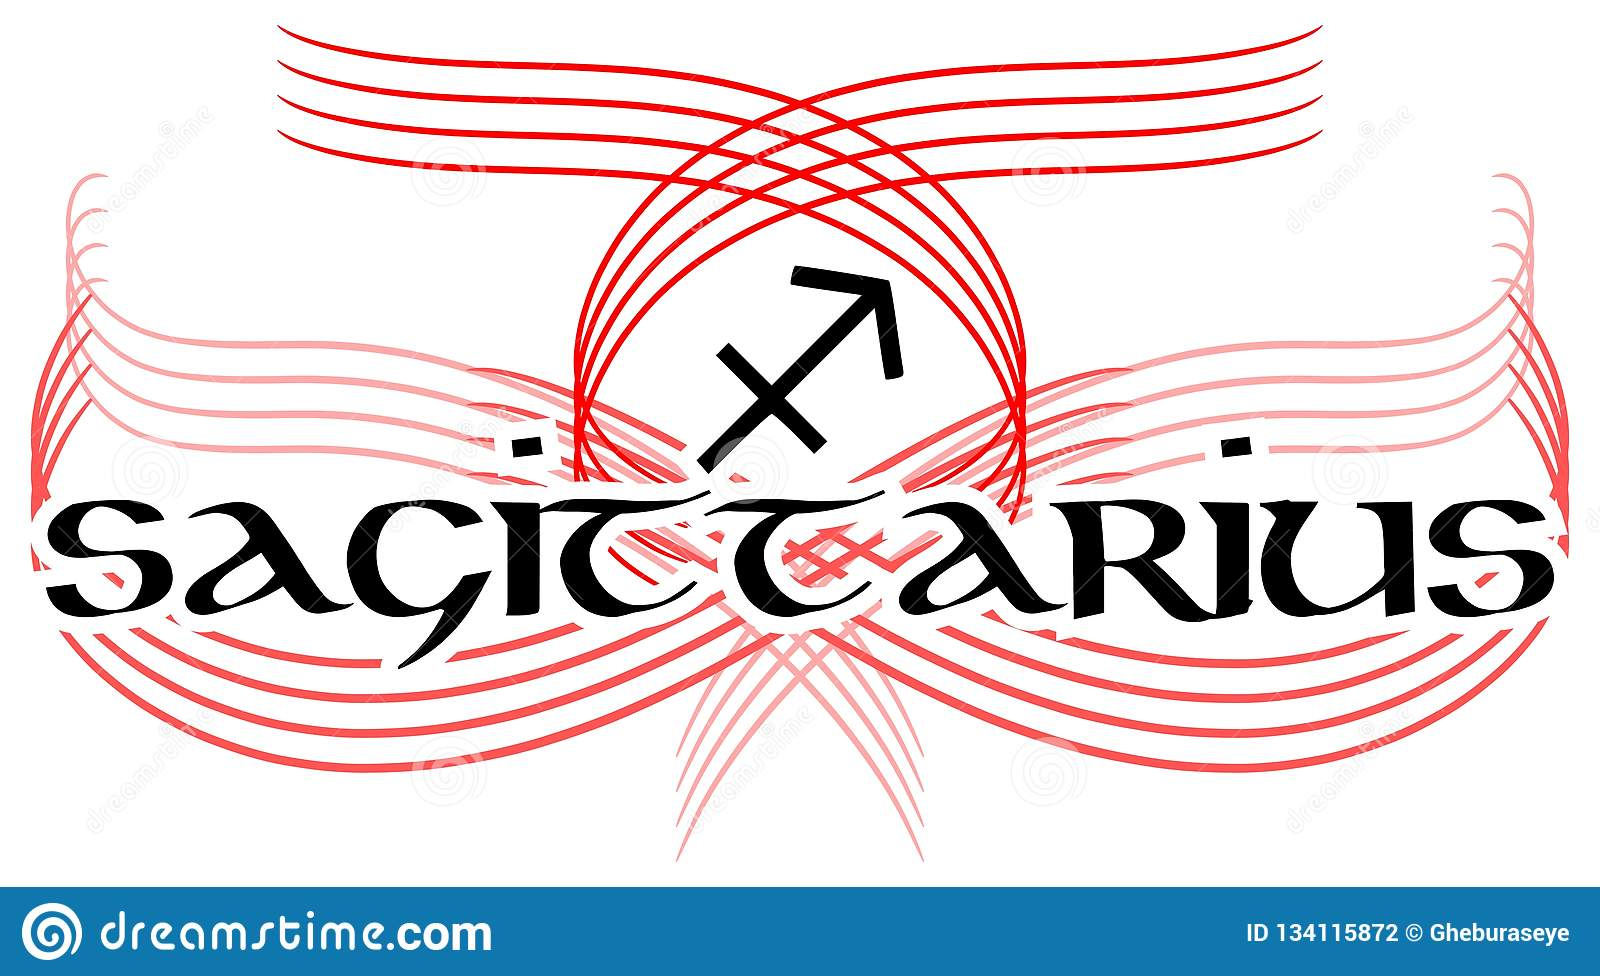 cad08b722a744 Image representing the word sagittarius isolated, ideal as a tattoo or for  projects related to the horoscope. More similar stock illustrations